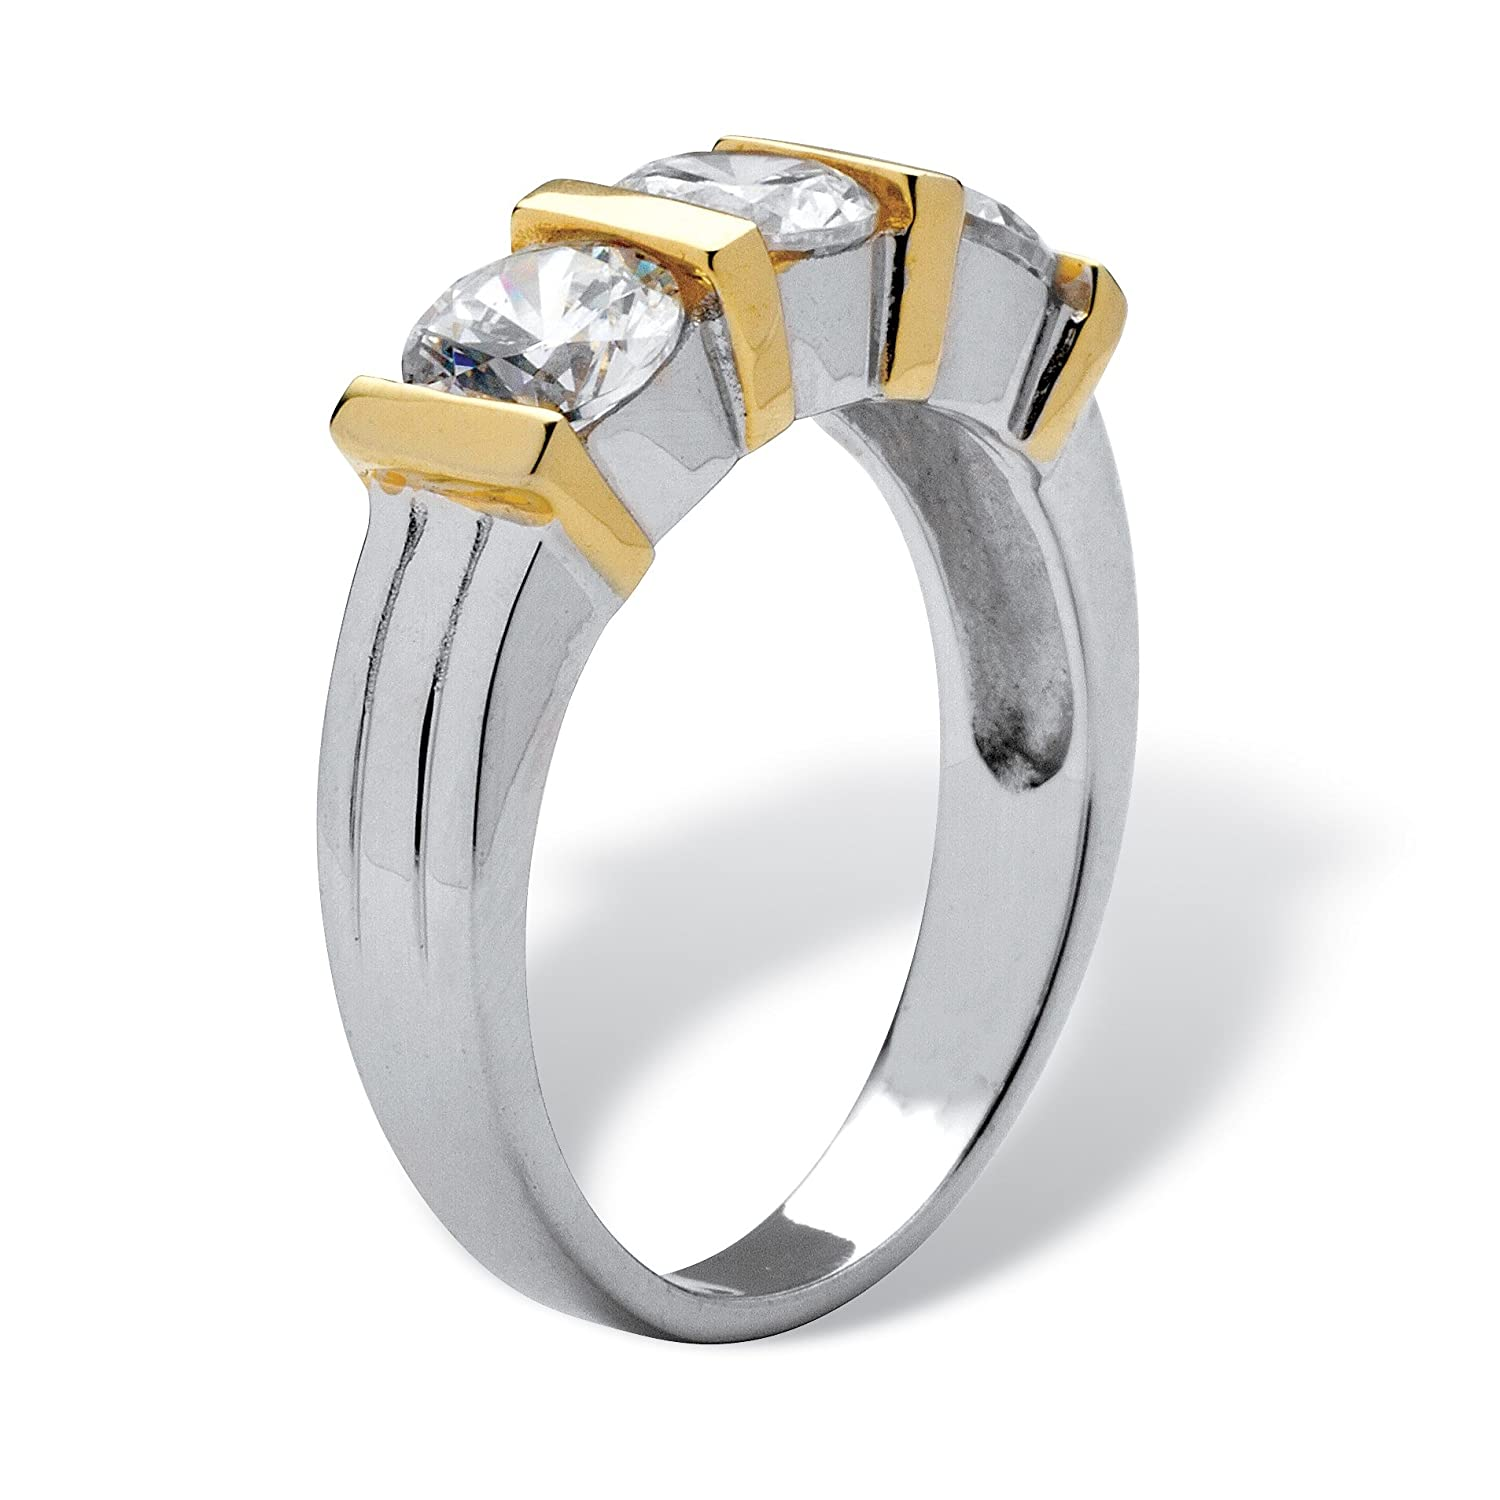 Round White Cubic Zirconia Rhodium-Plated .925 Sterling Silver and Gold Tone 3-Stone Ring